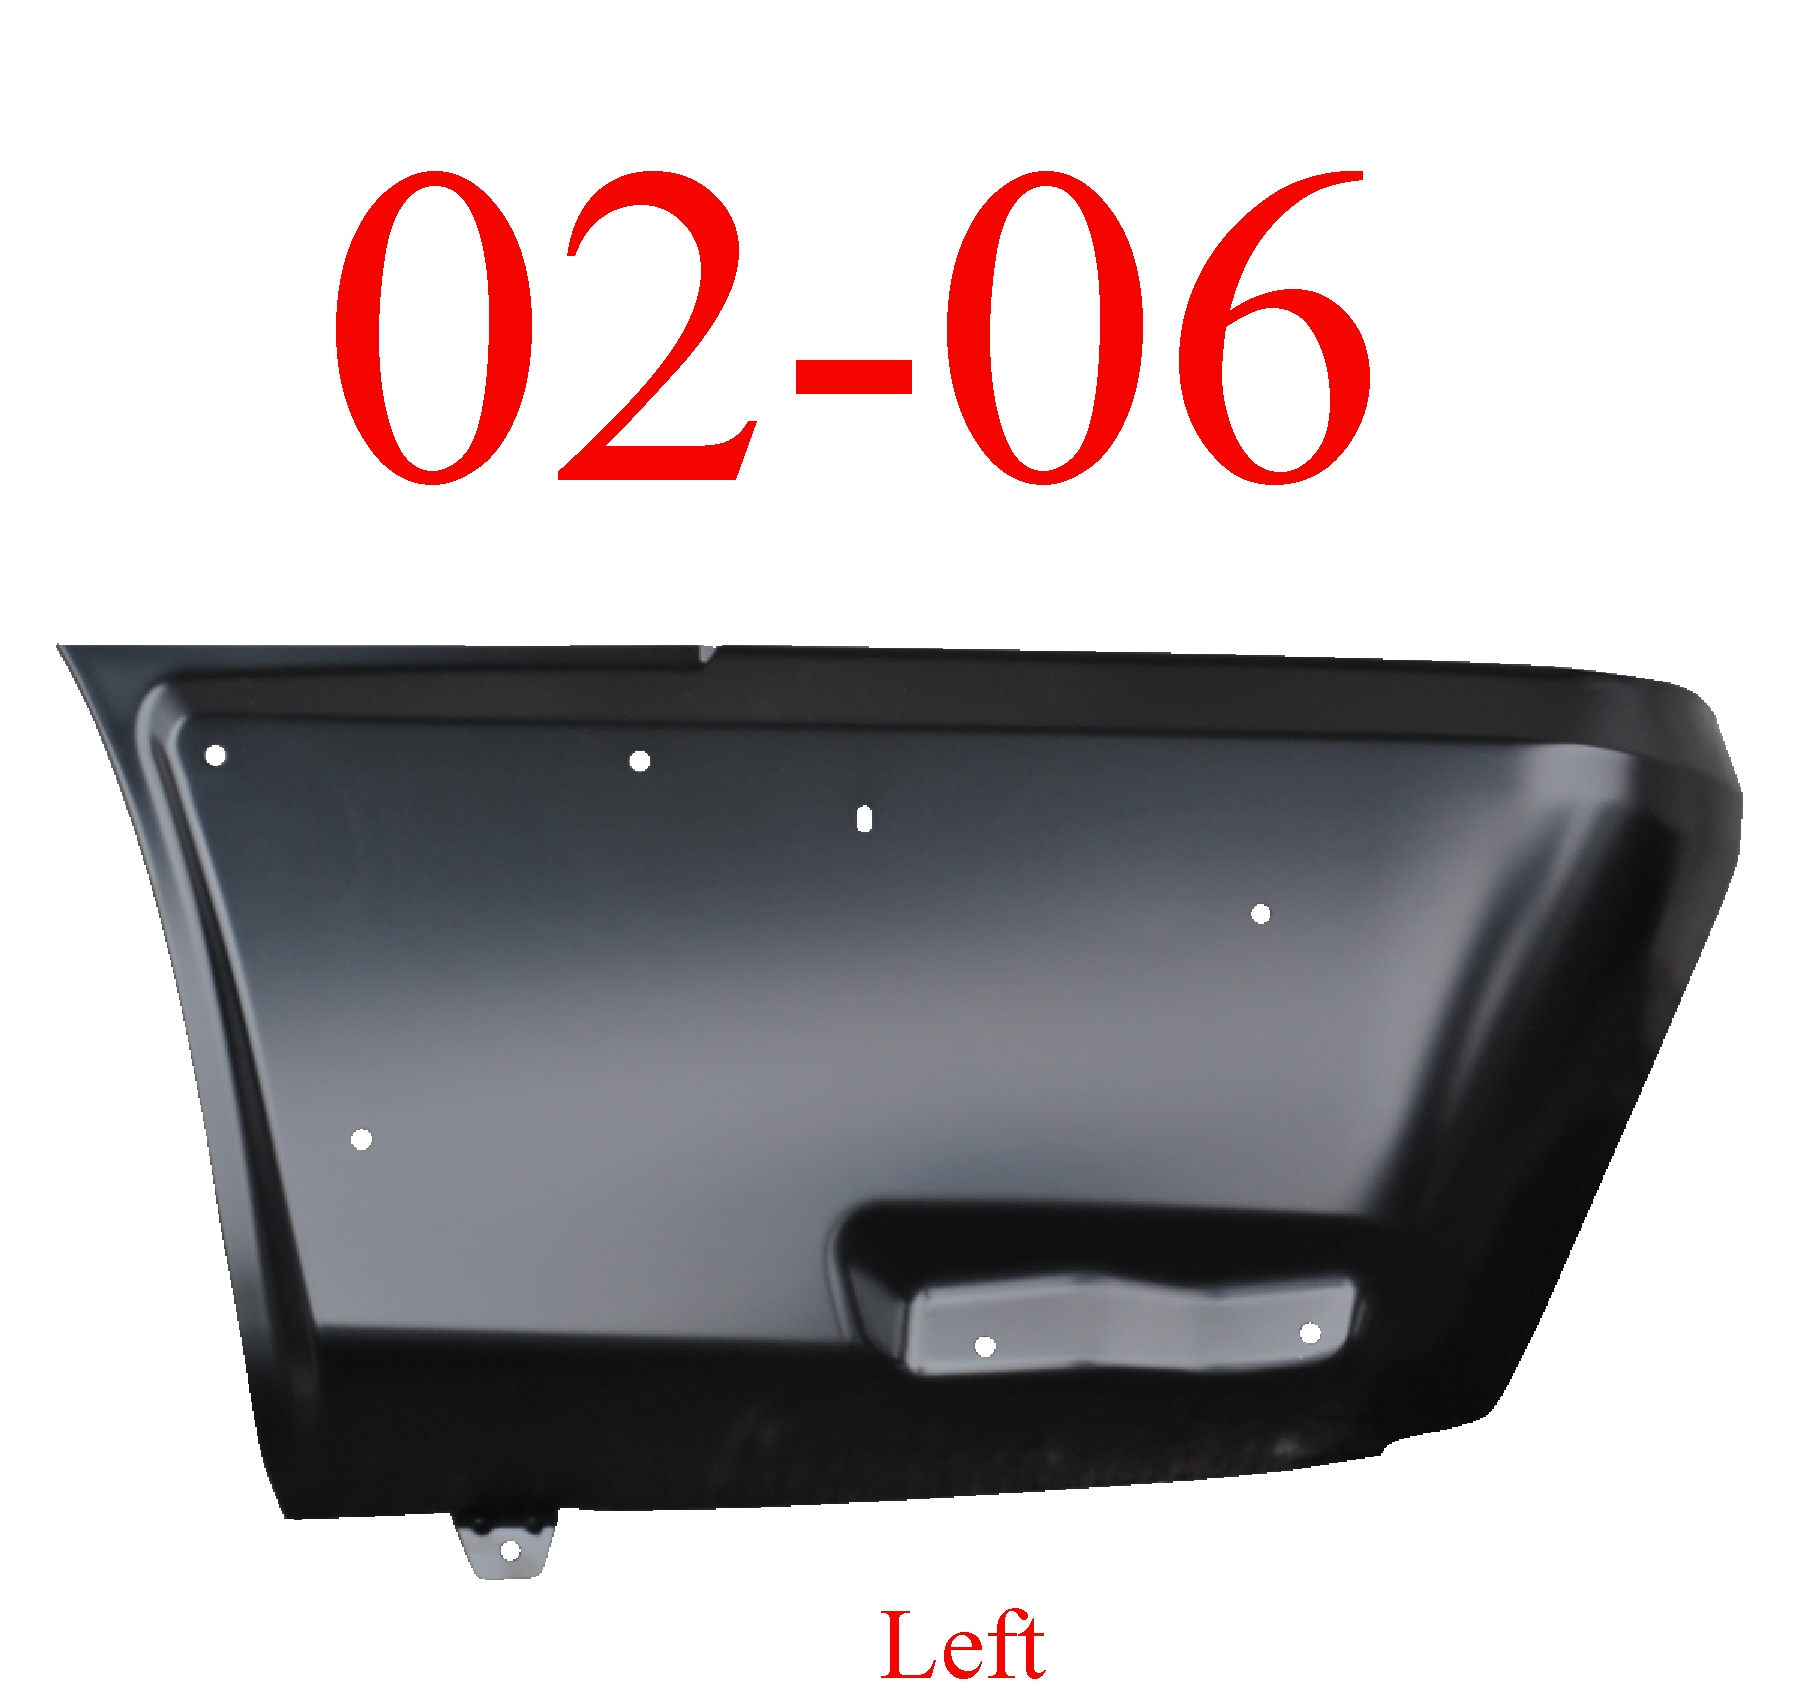 02-06 Chevy Avalanche Left Rear Lower Quarter Panel W/Cladding